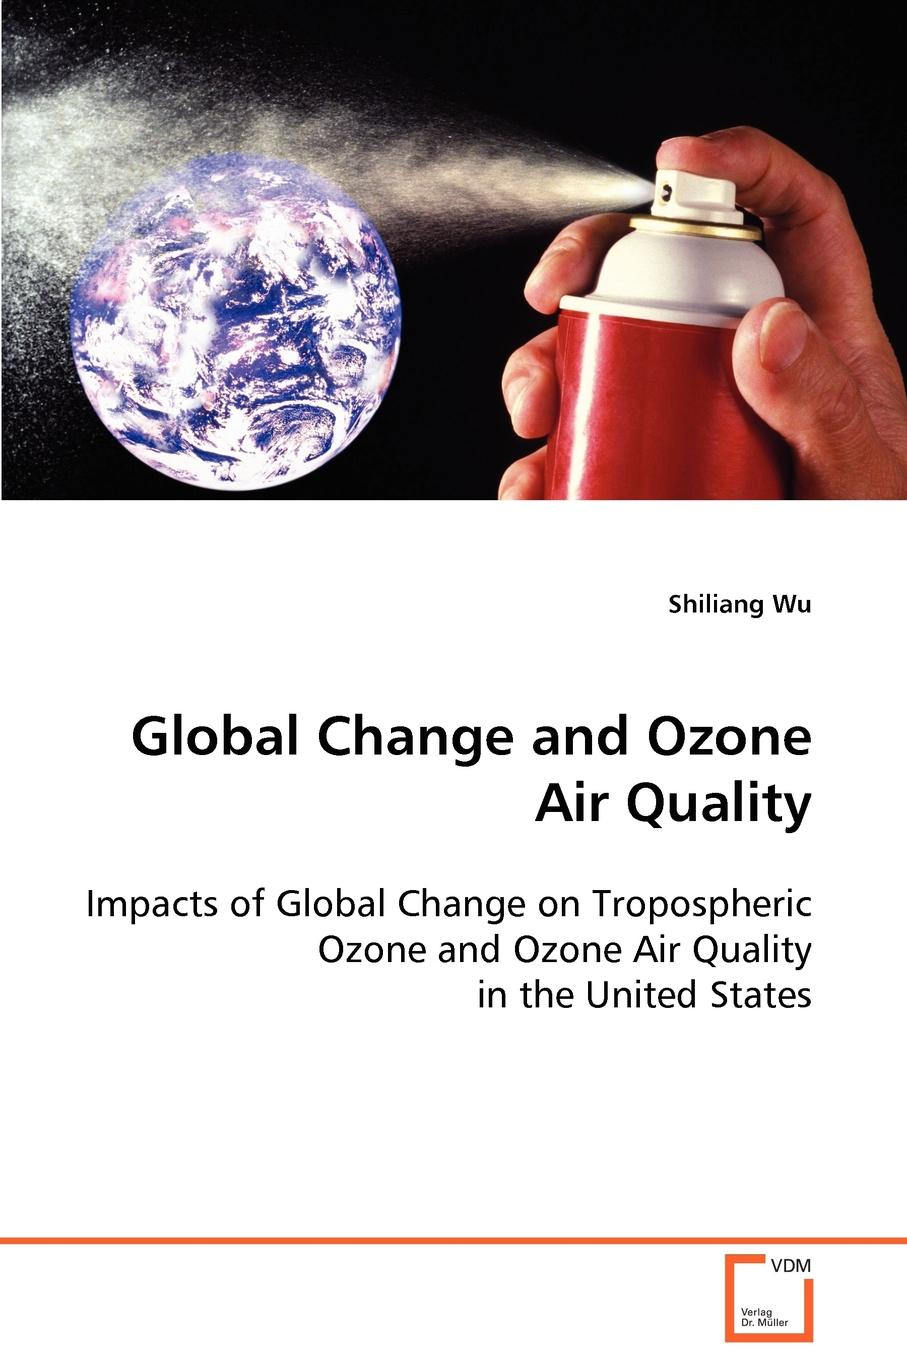 Shiliang Wu Global Change and Ozone Air Quality william rom n environmental policy and public health air pollution global climate change and wilderness